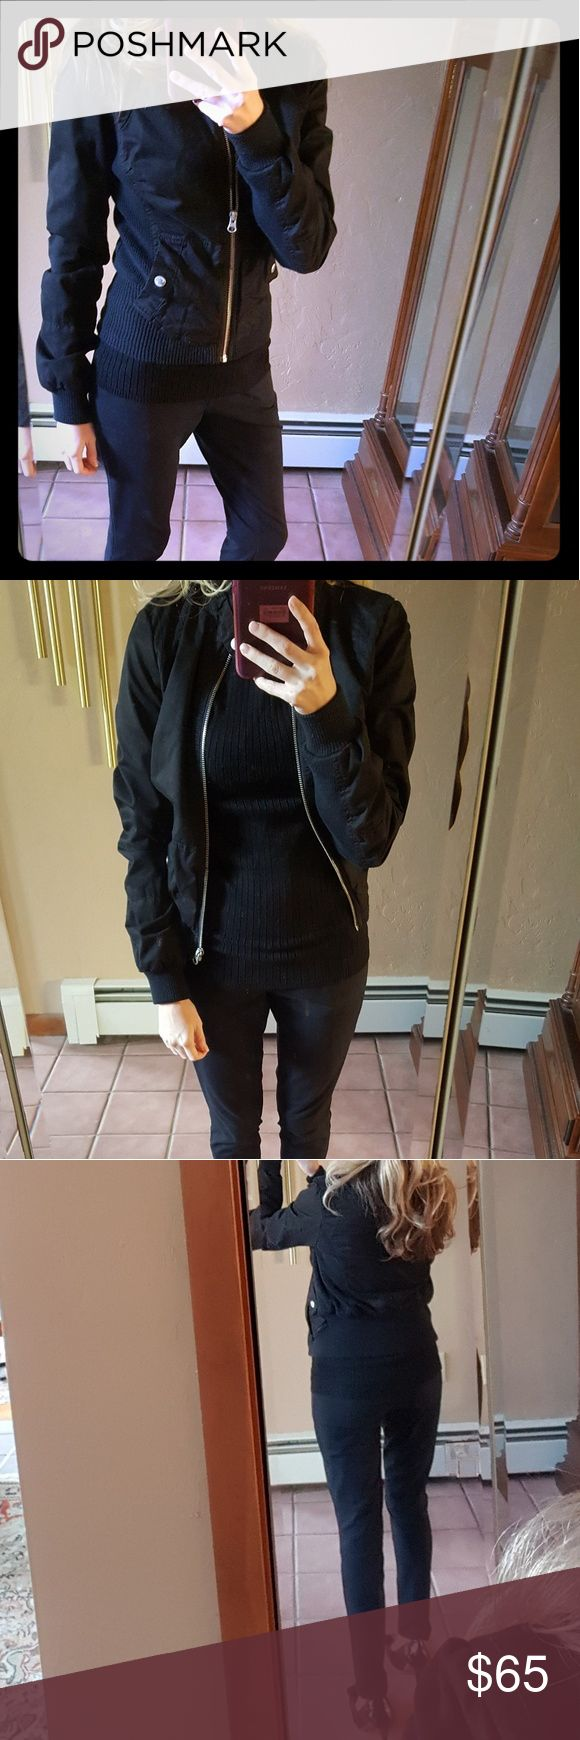 Guess Bomber Jacket Lightly worn. Sexy fitted bomber jacket. This jacket is so stylish & goes with everything. Looks great zipped up or you can leave open. Perfect for Fall/Spring weather with jeans or dressed up for work. Guess Jackets & Coats